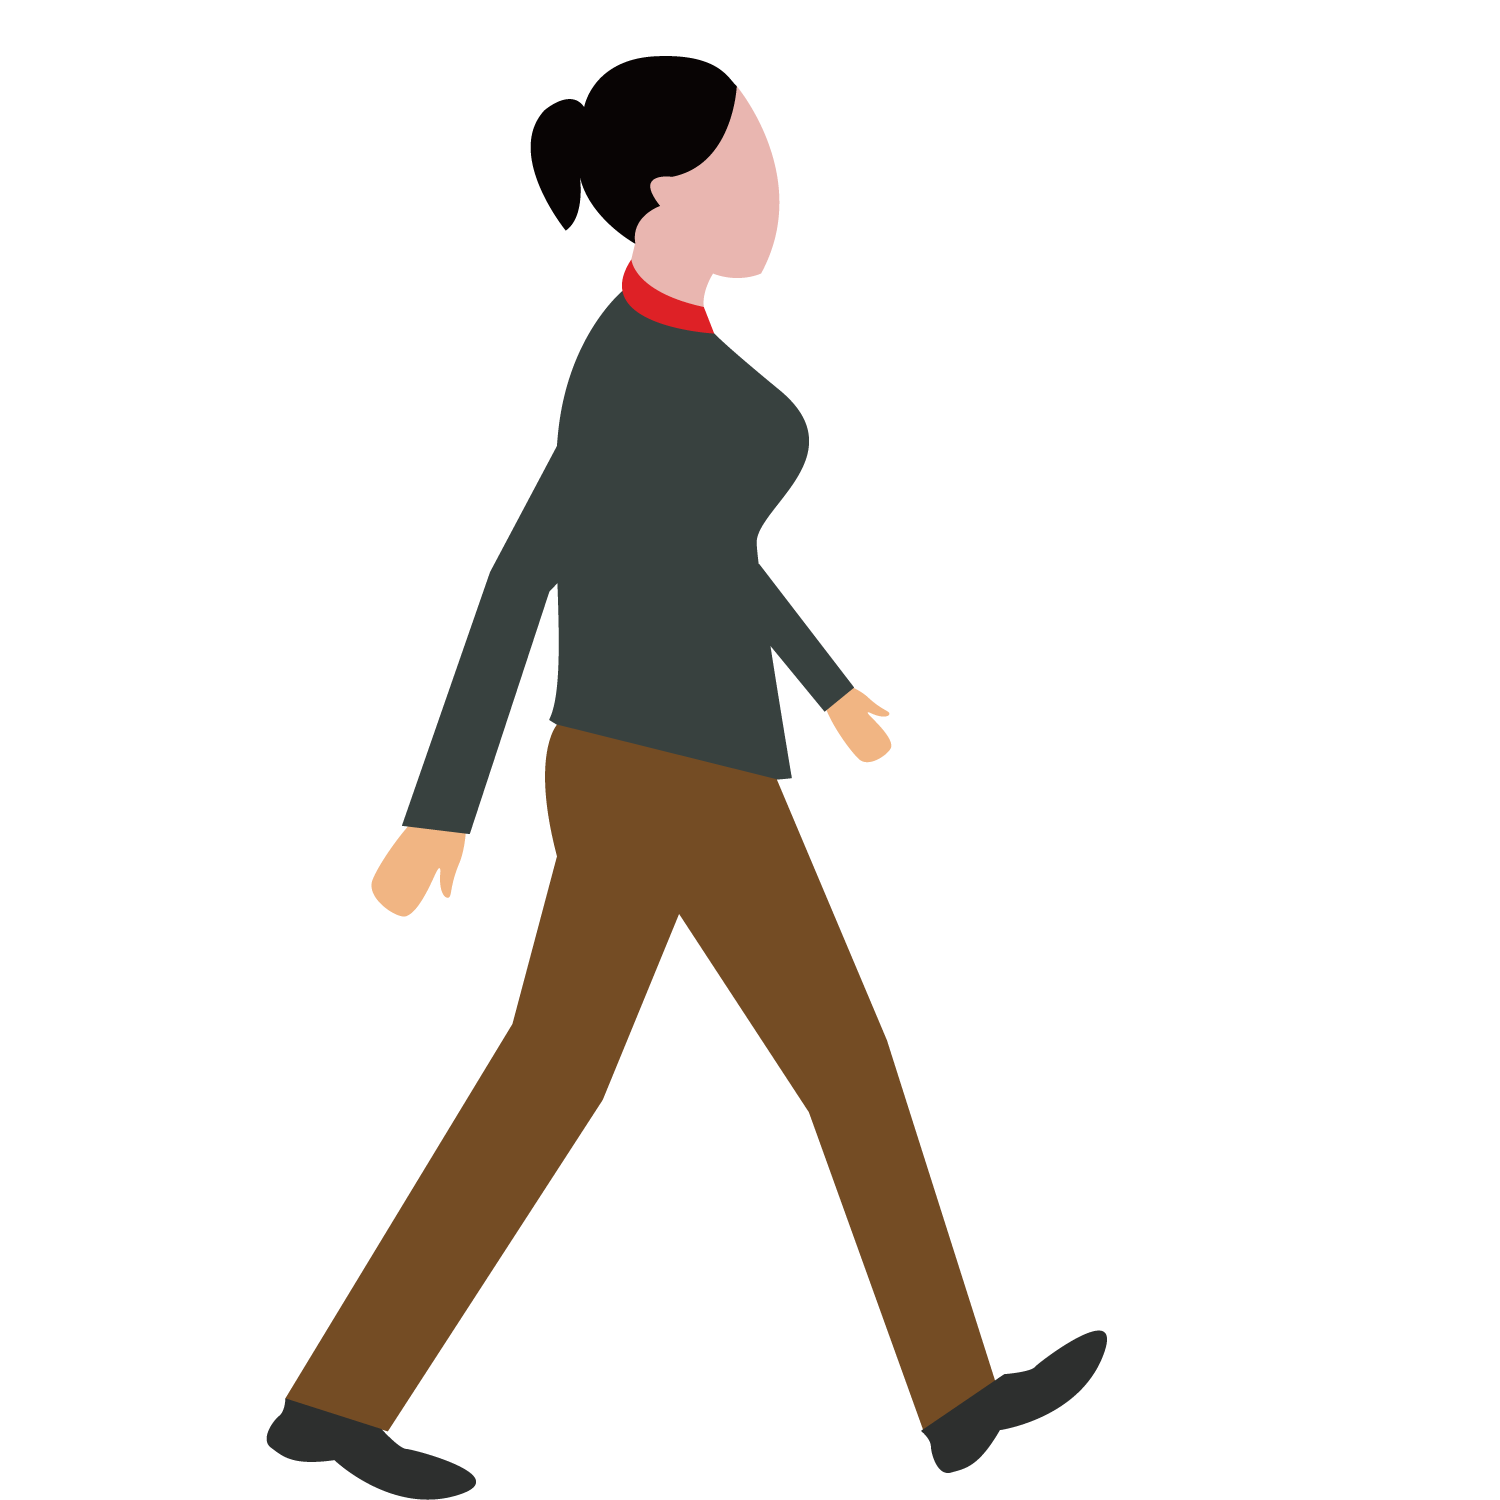 Woman walking dog clipart picture black and white stock Walking - Walking Woman 1500*1500 transprent Png Free Download ... picture black and white stock